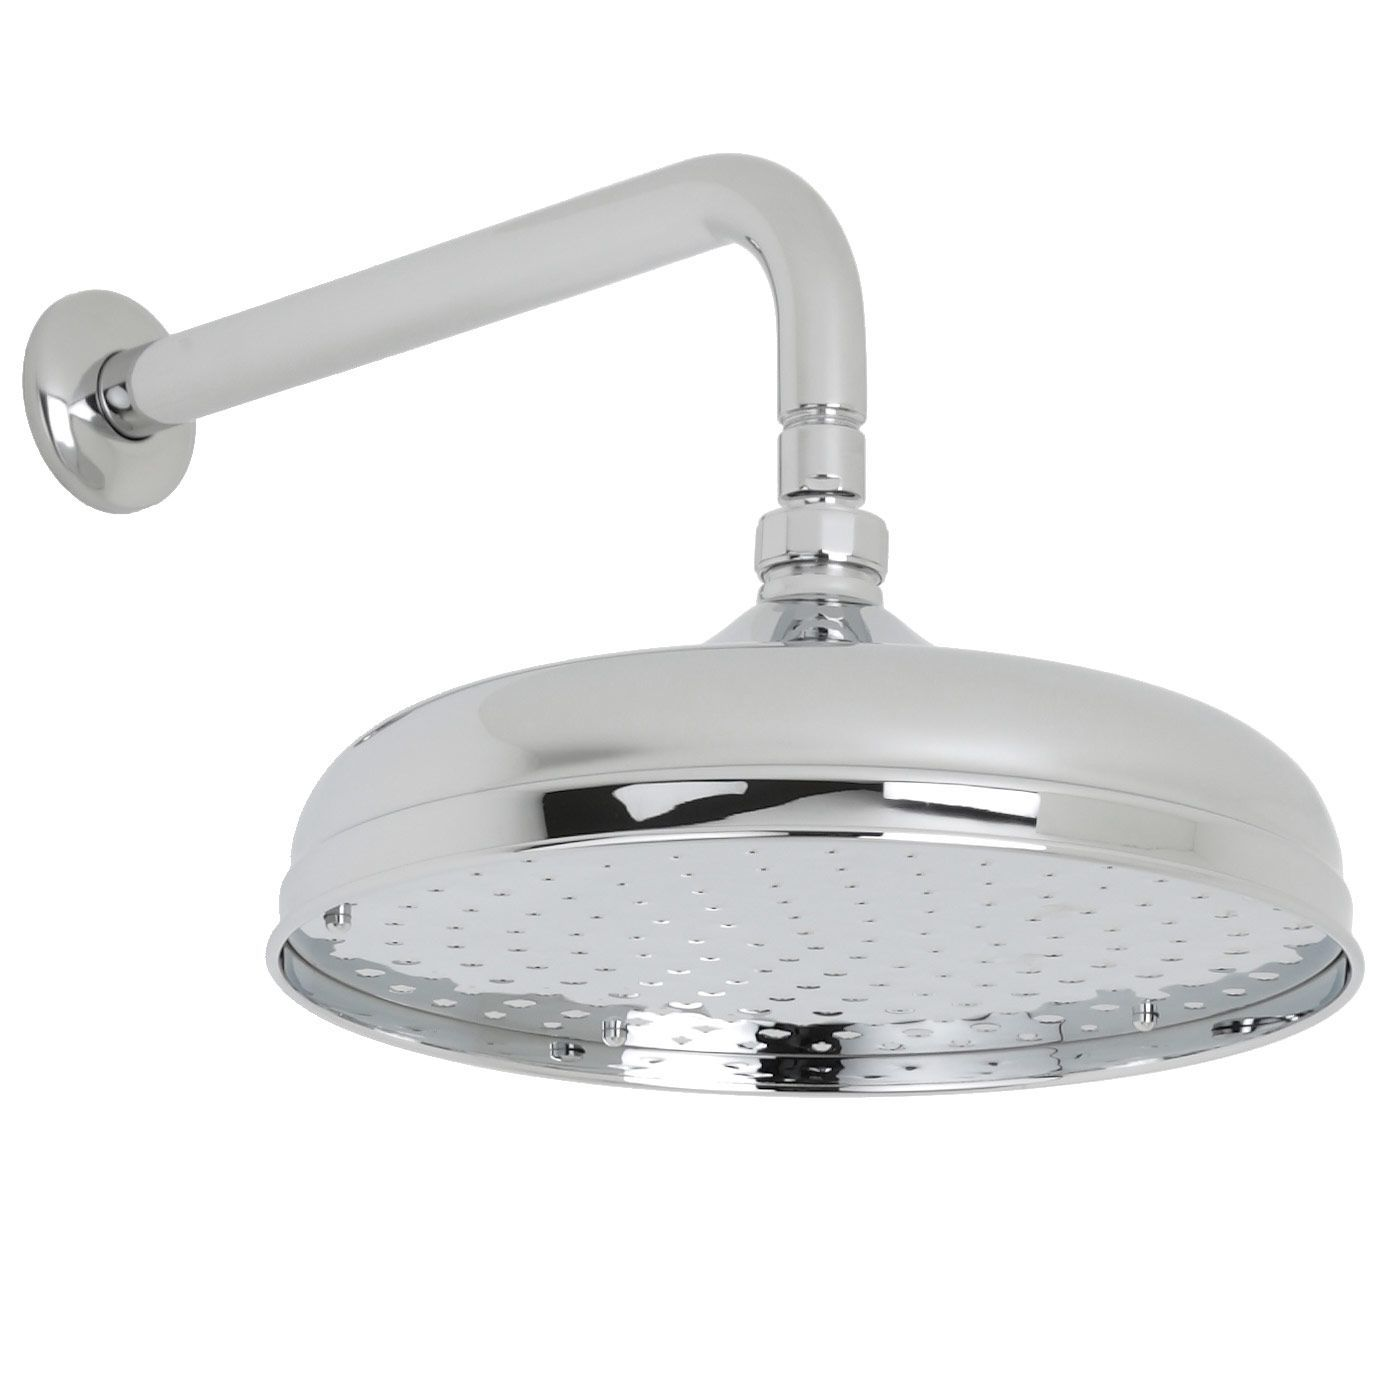 Valquest 12 Traditional Shower Head With Wall Arm